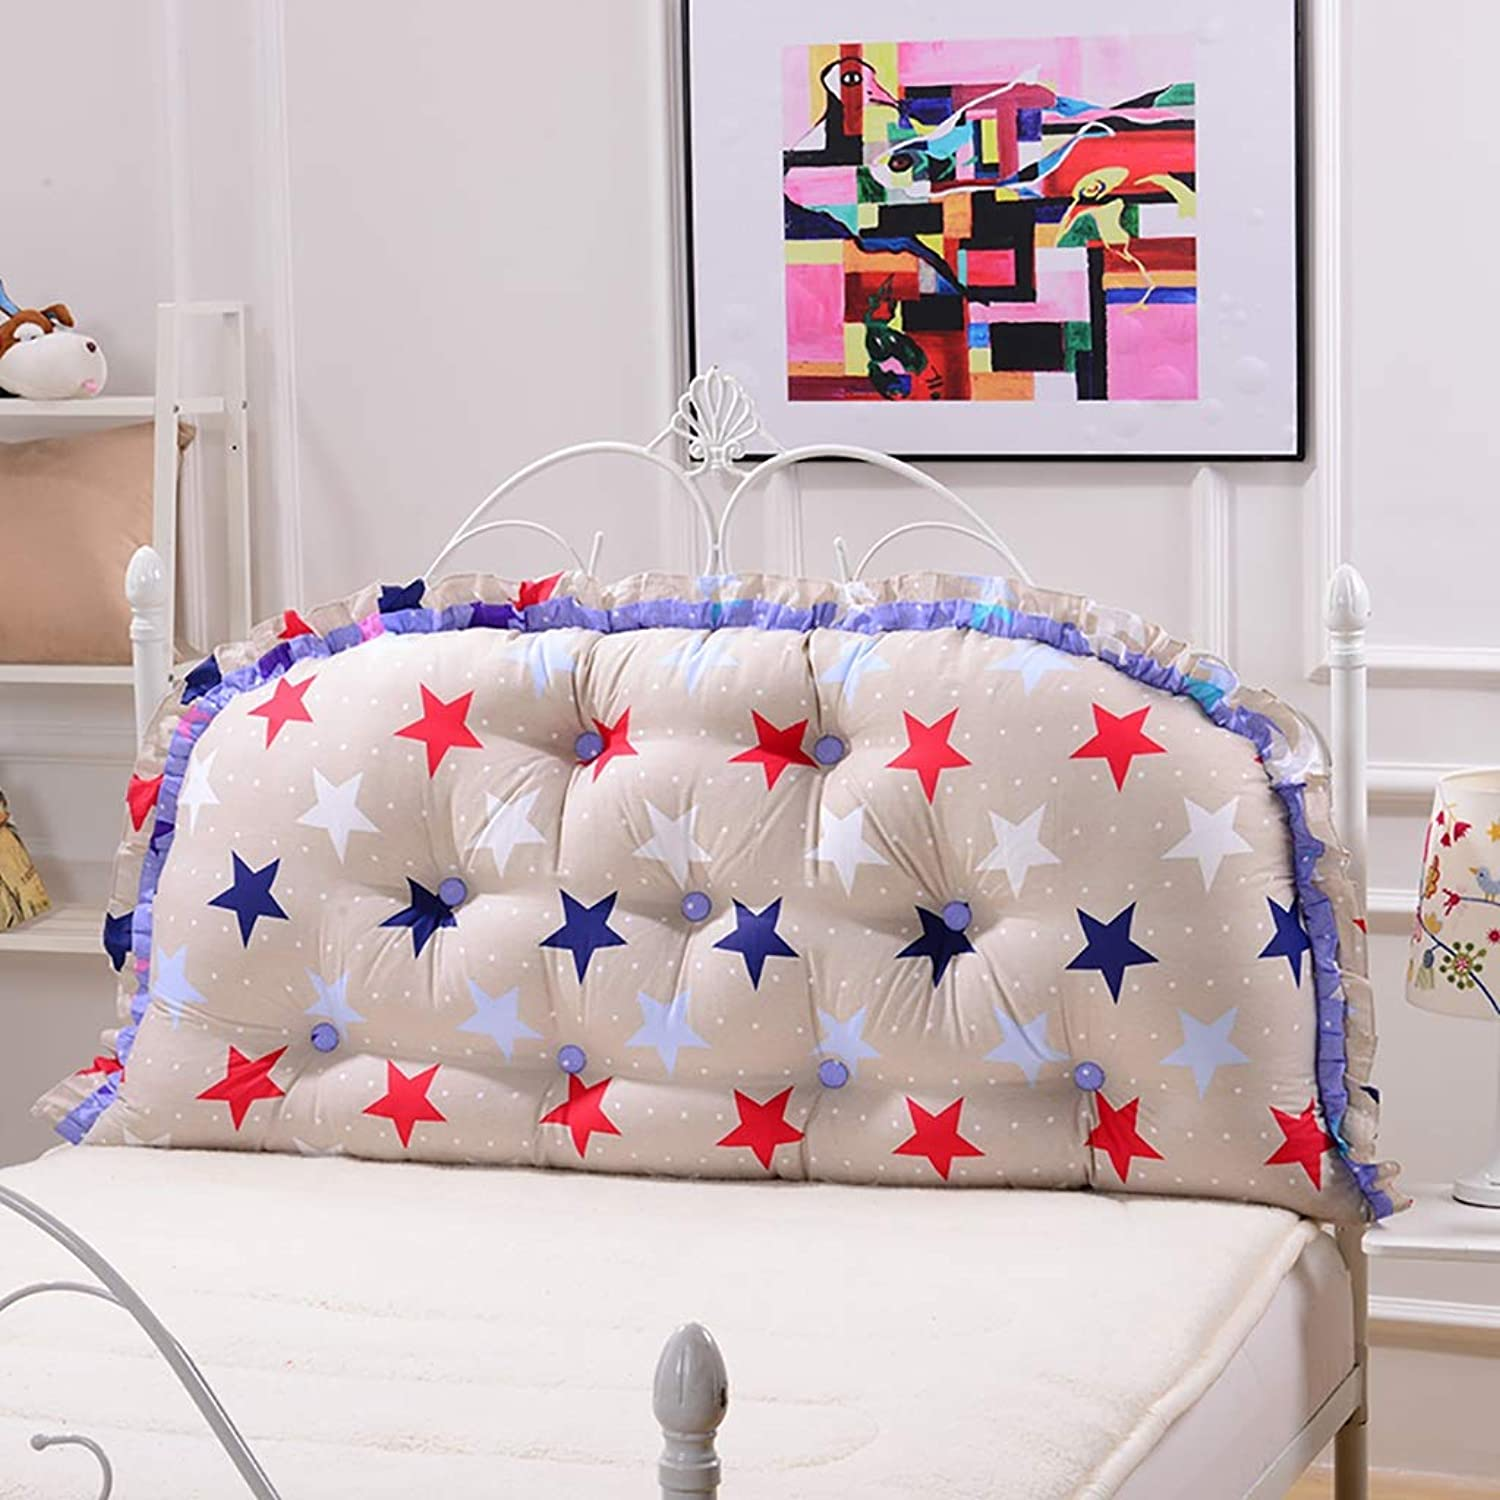 Headboard Bed Backrest Cushion Bed Cushion Bedside Pillow Cotton Soft Large Pillow Lumbar Support Detachable and Washable 11 Solid colors 4 (color   A11, Size   120  65cm)